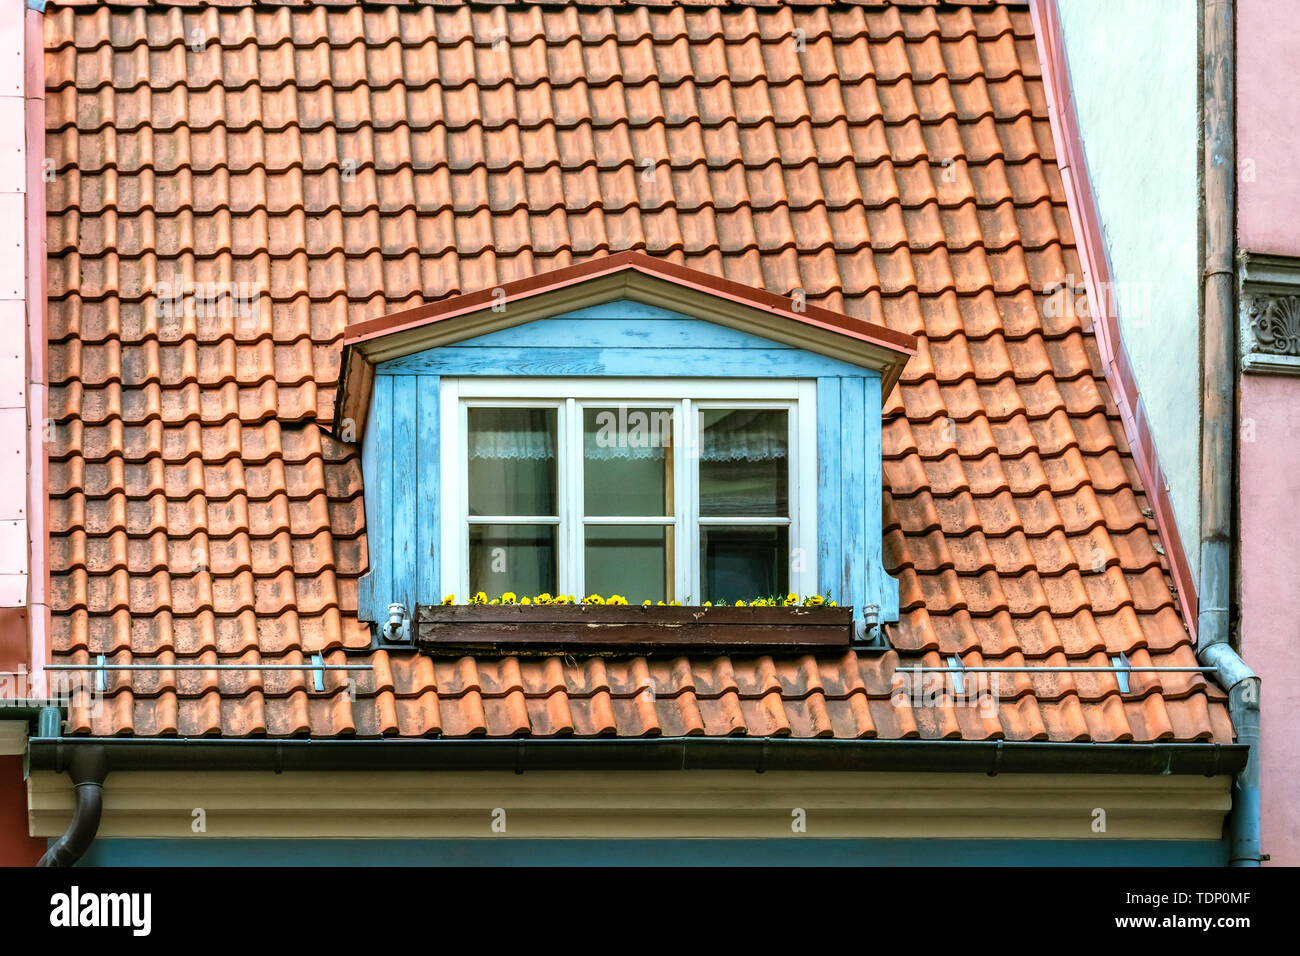 Mansard Roofing Photos & Mansard Roofing Images - Alamy